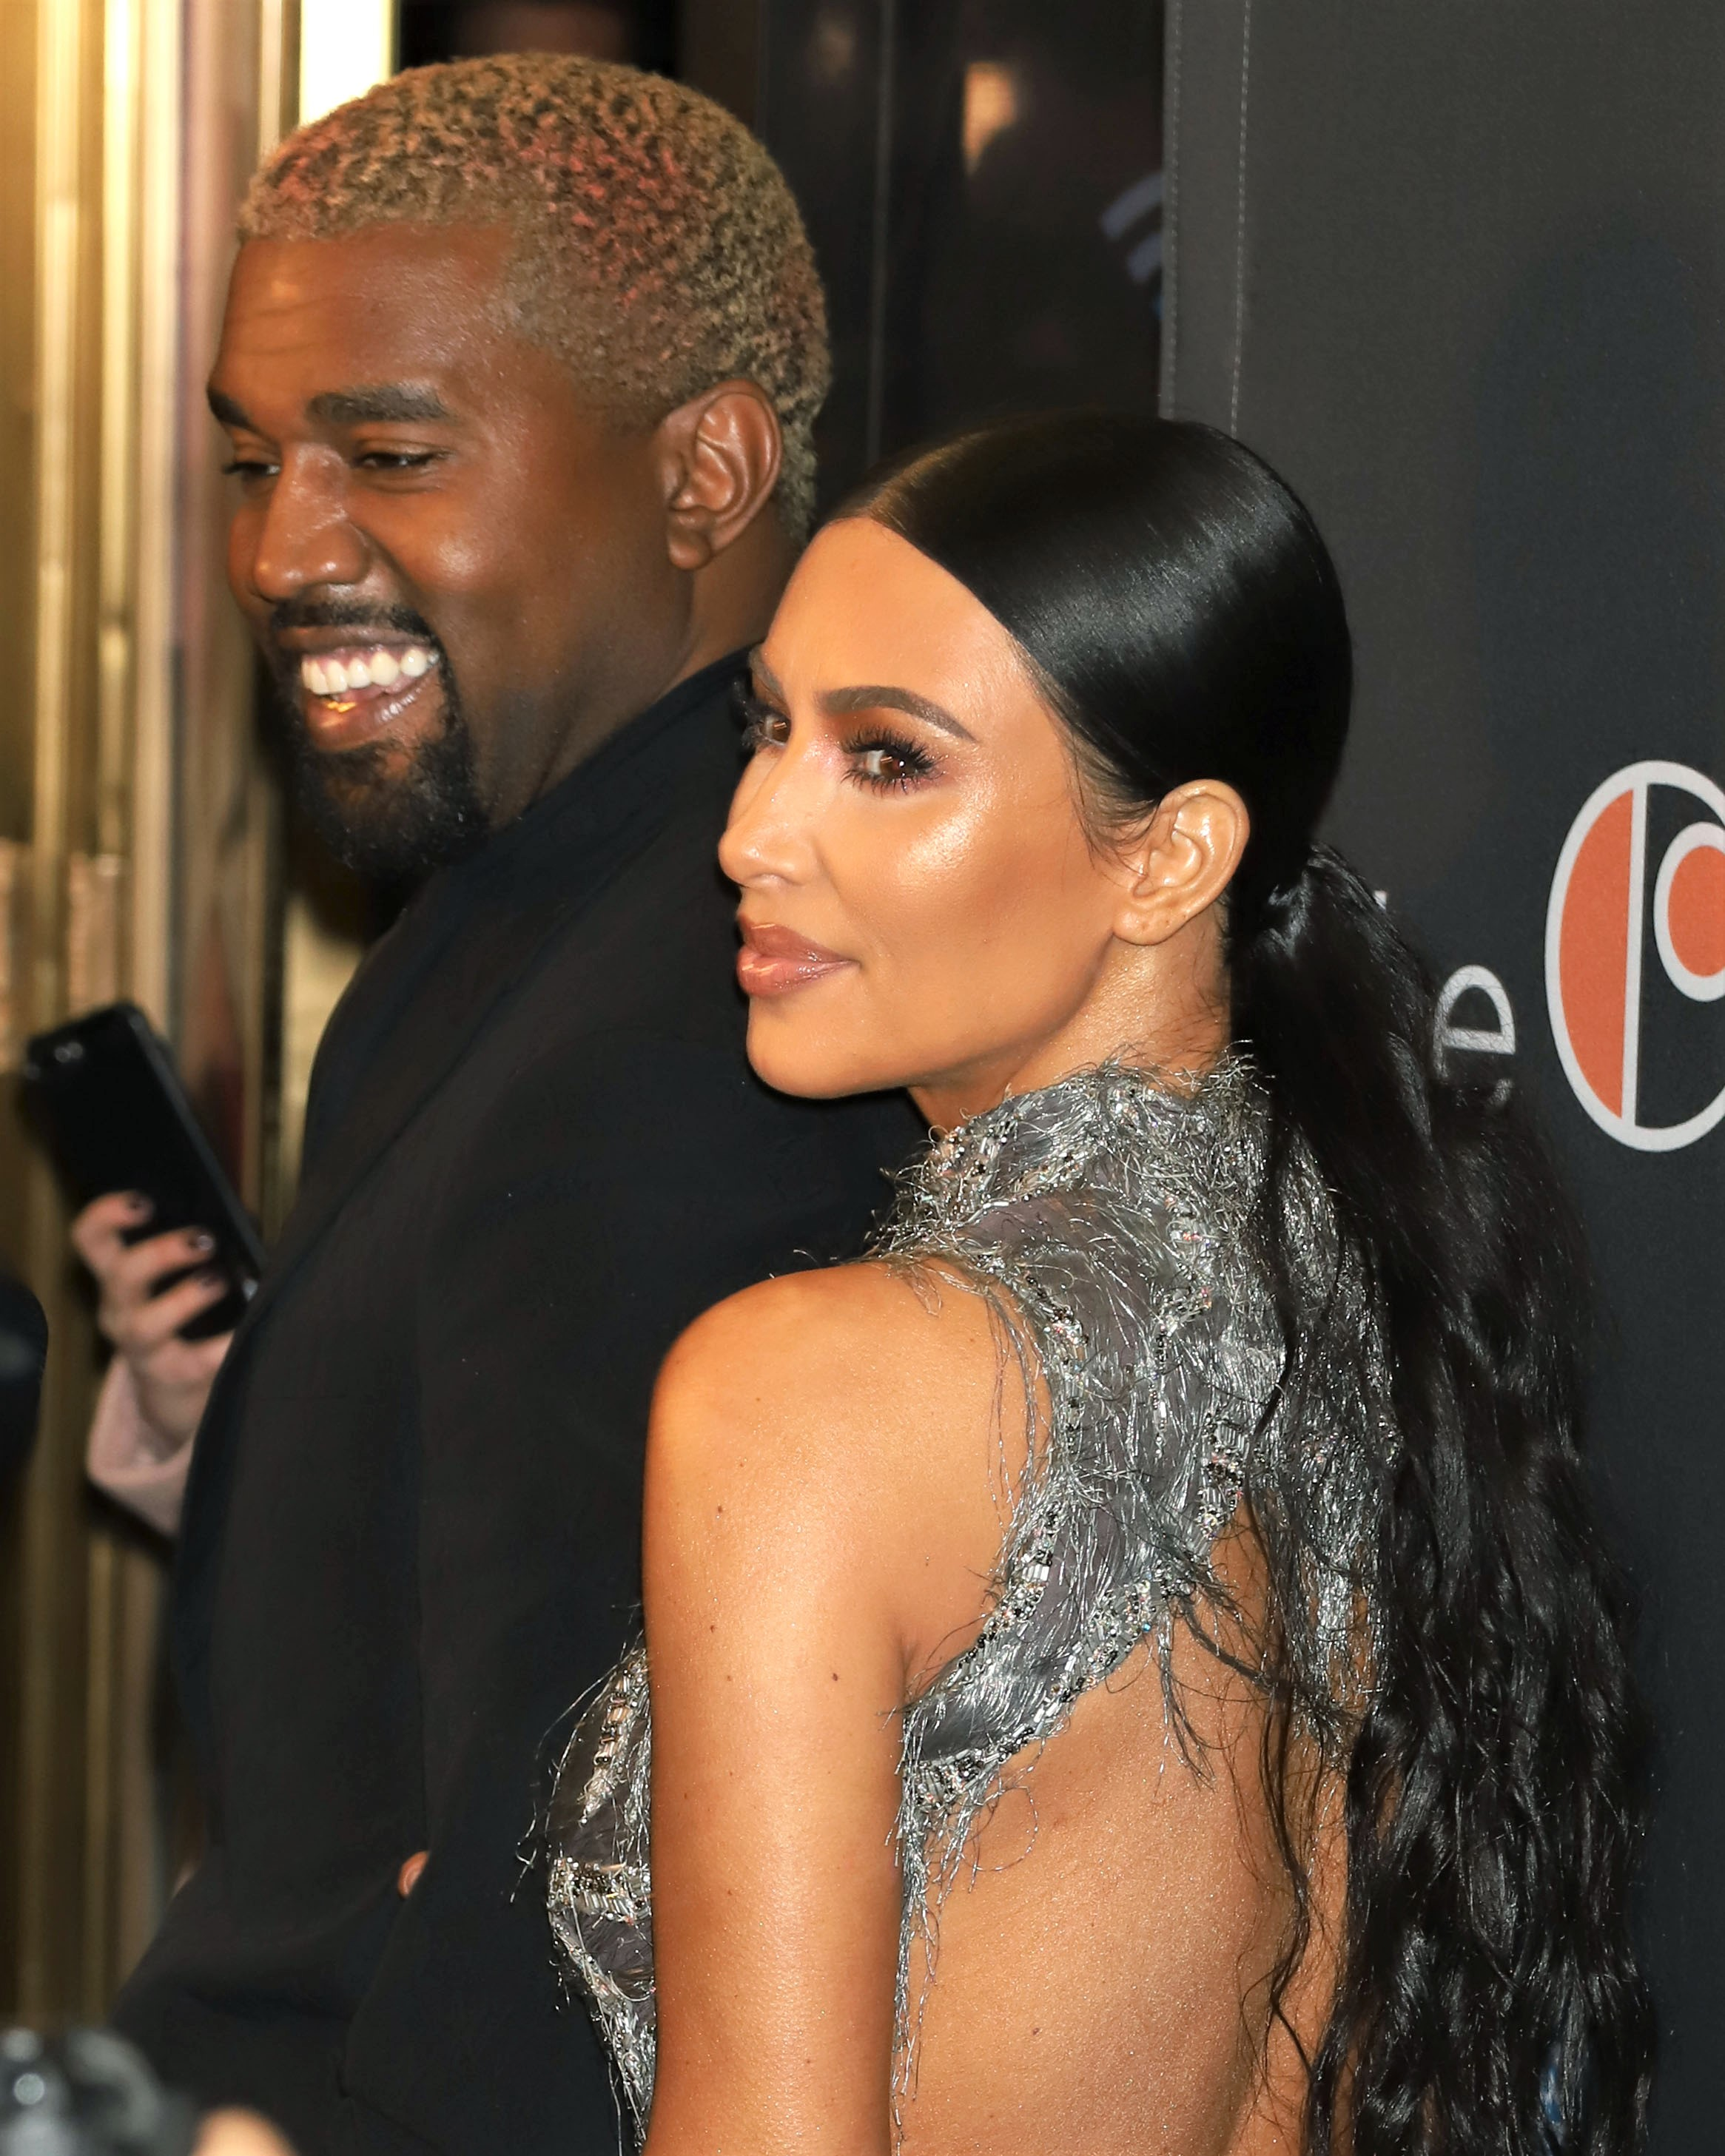 A Showstopper! North West Adorably Takes the Mic at Dad Kanye West's Sunday Service